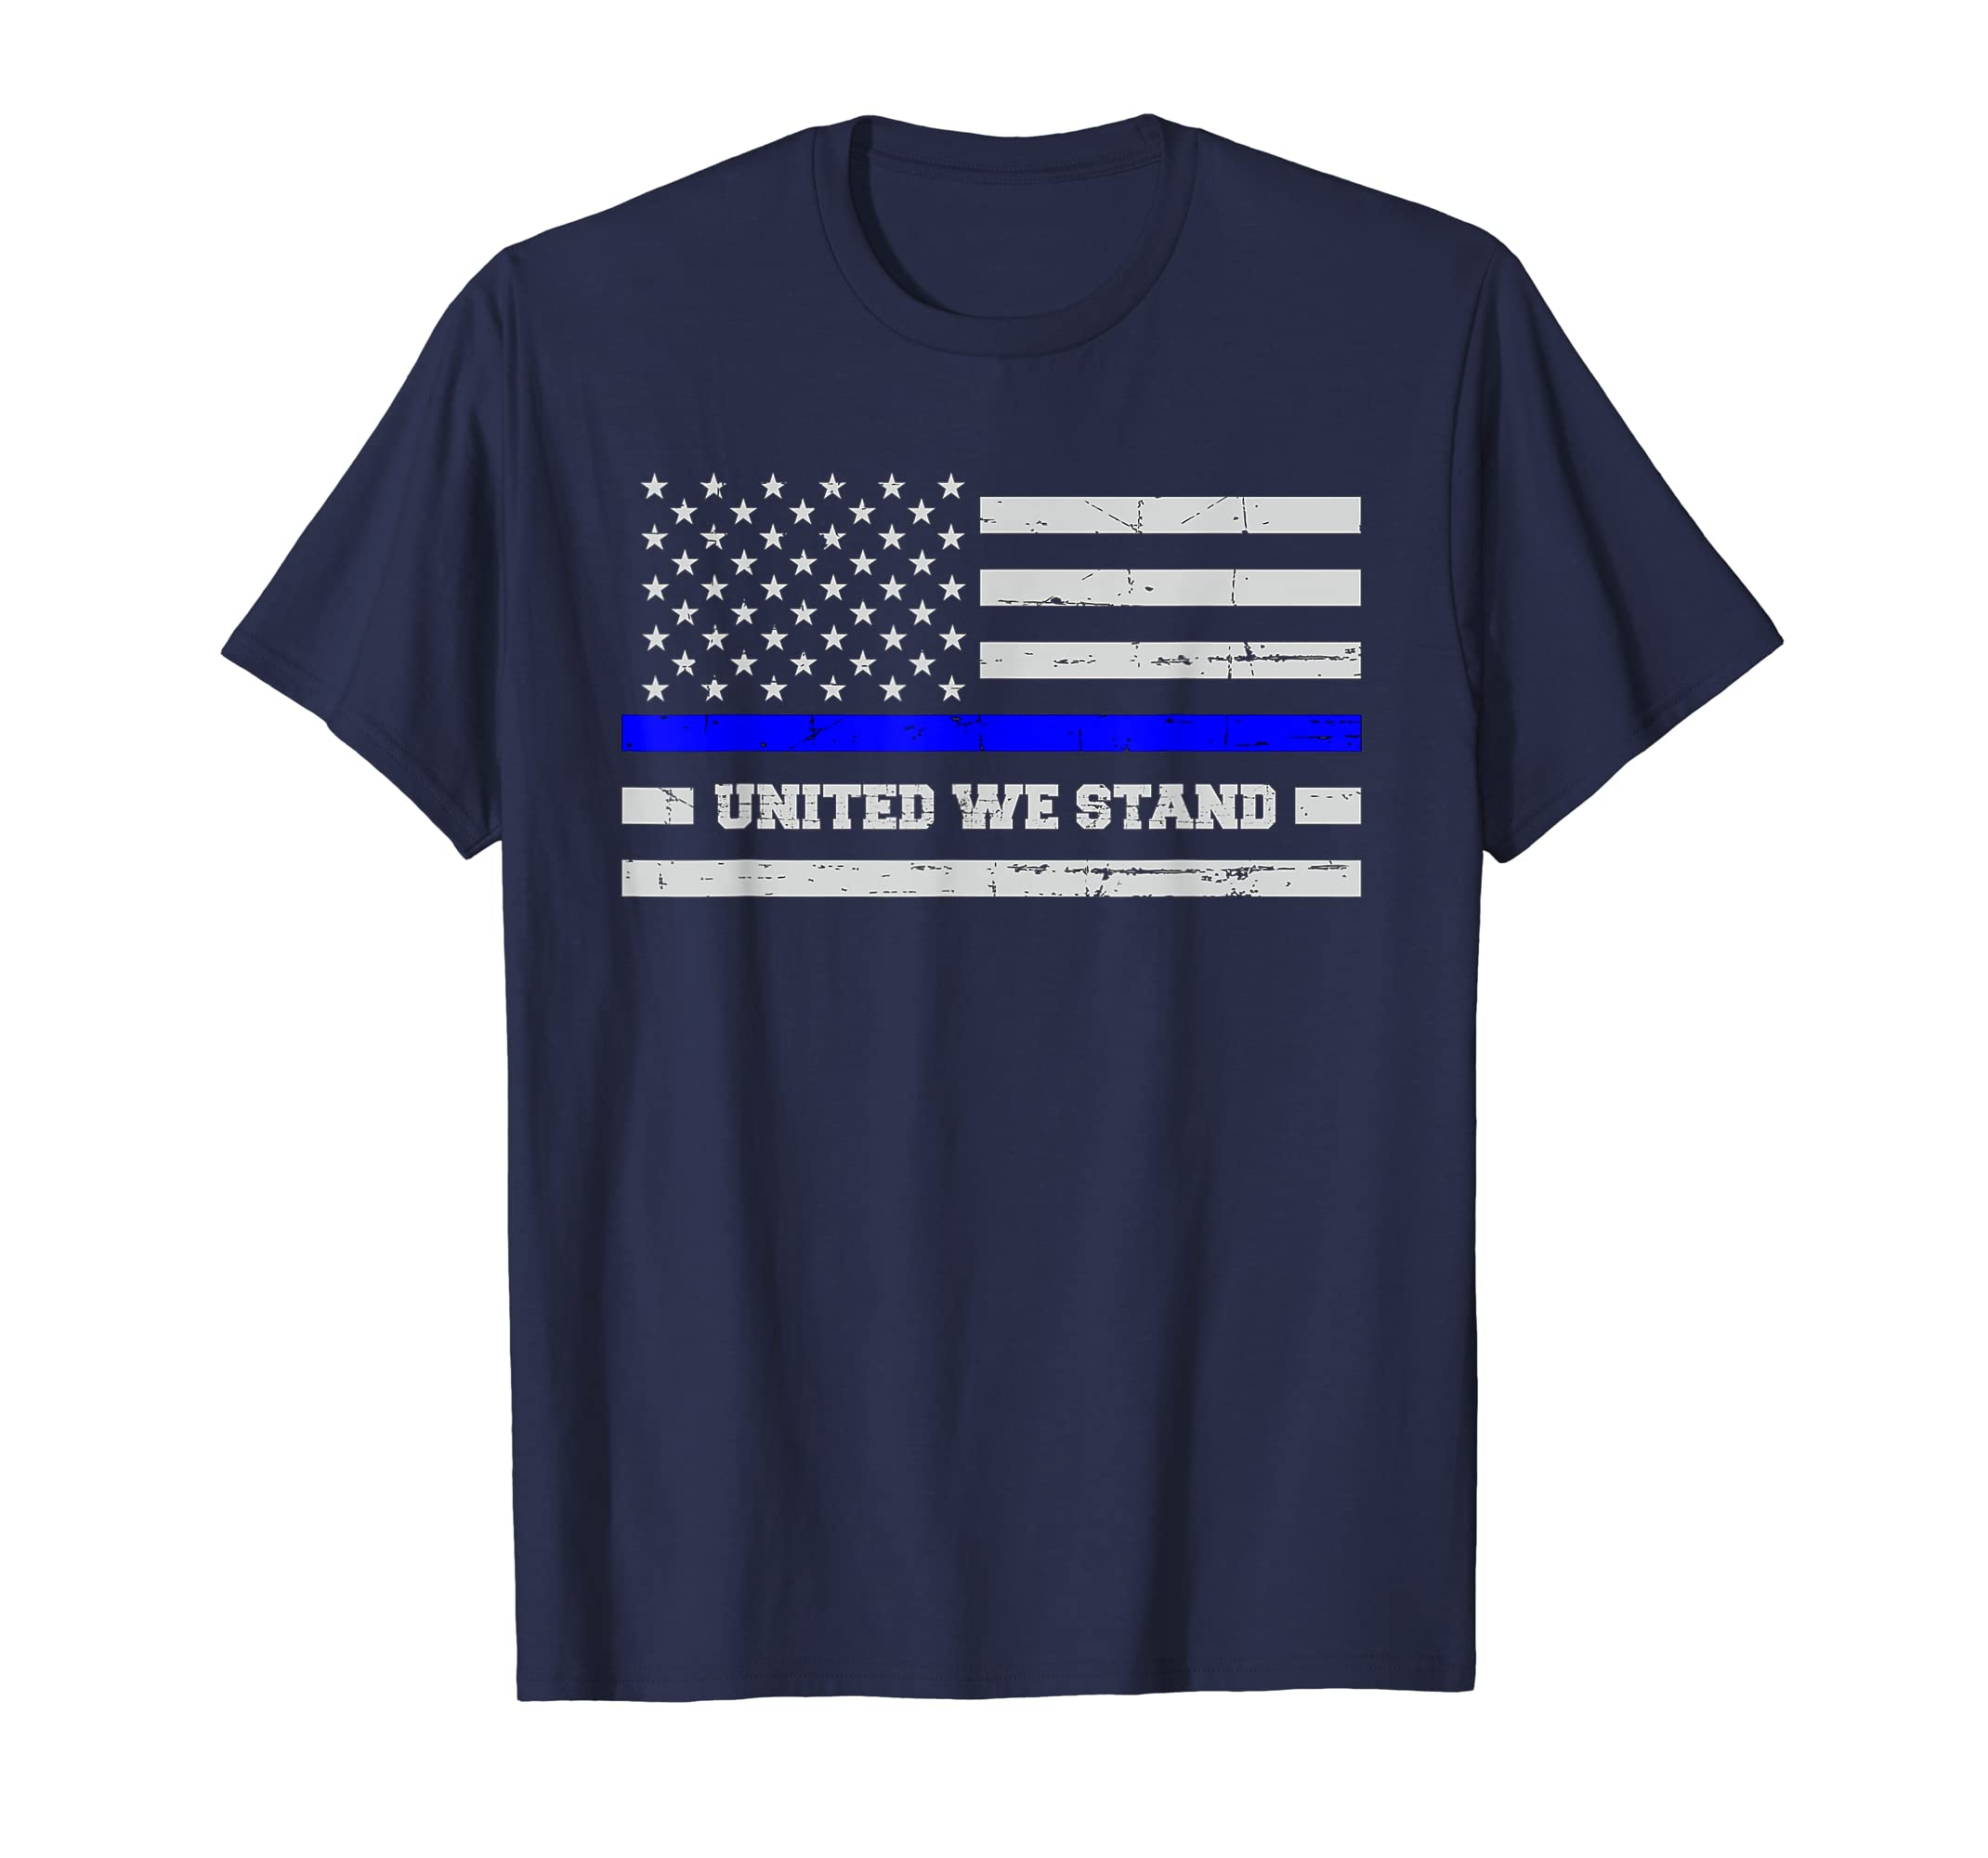 b4a78a7a Amazon.com: Thin Blue Line Flag Shirt for Women & Men United We Stand:  Clothing